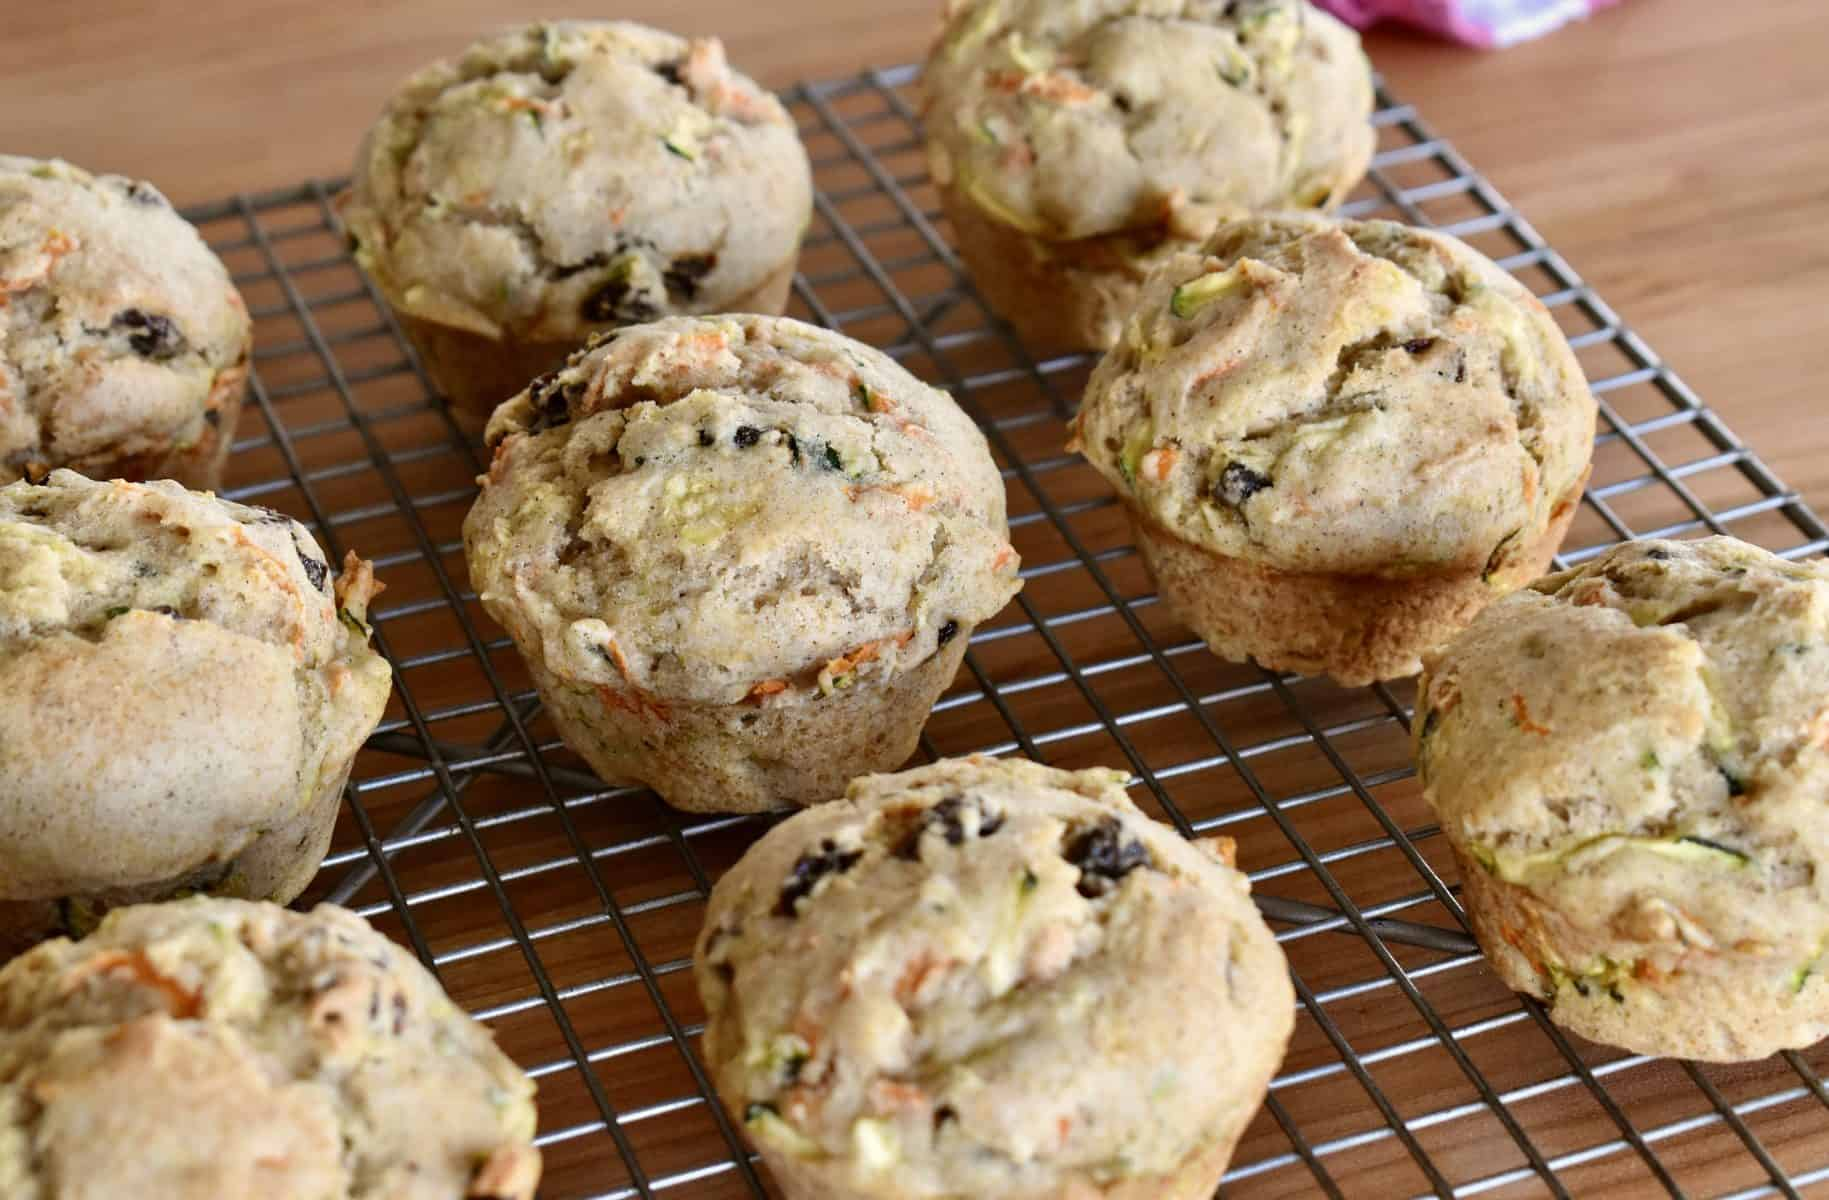 Zucchini Carrot Raisin Muffins on a cooling rack.